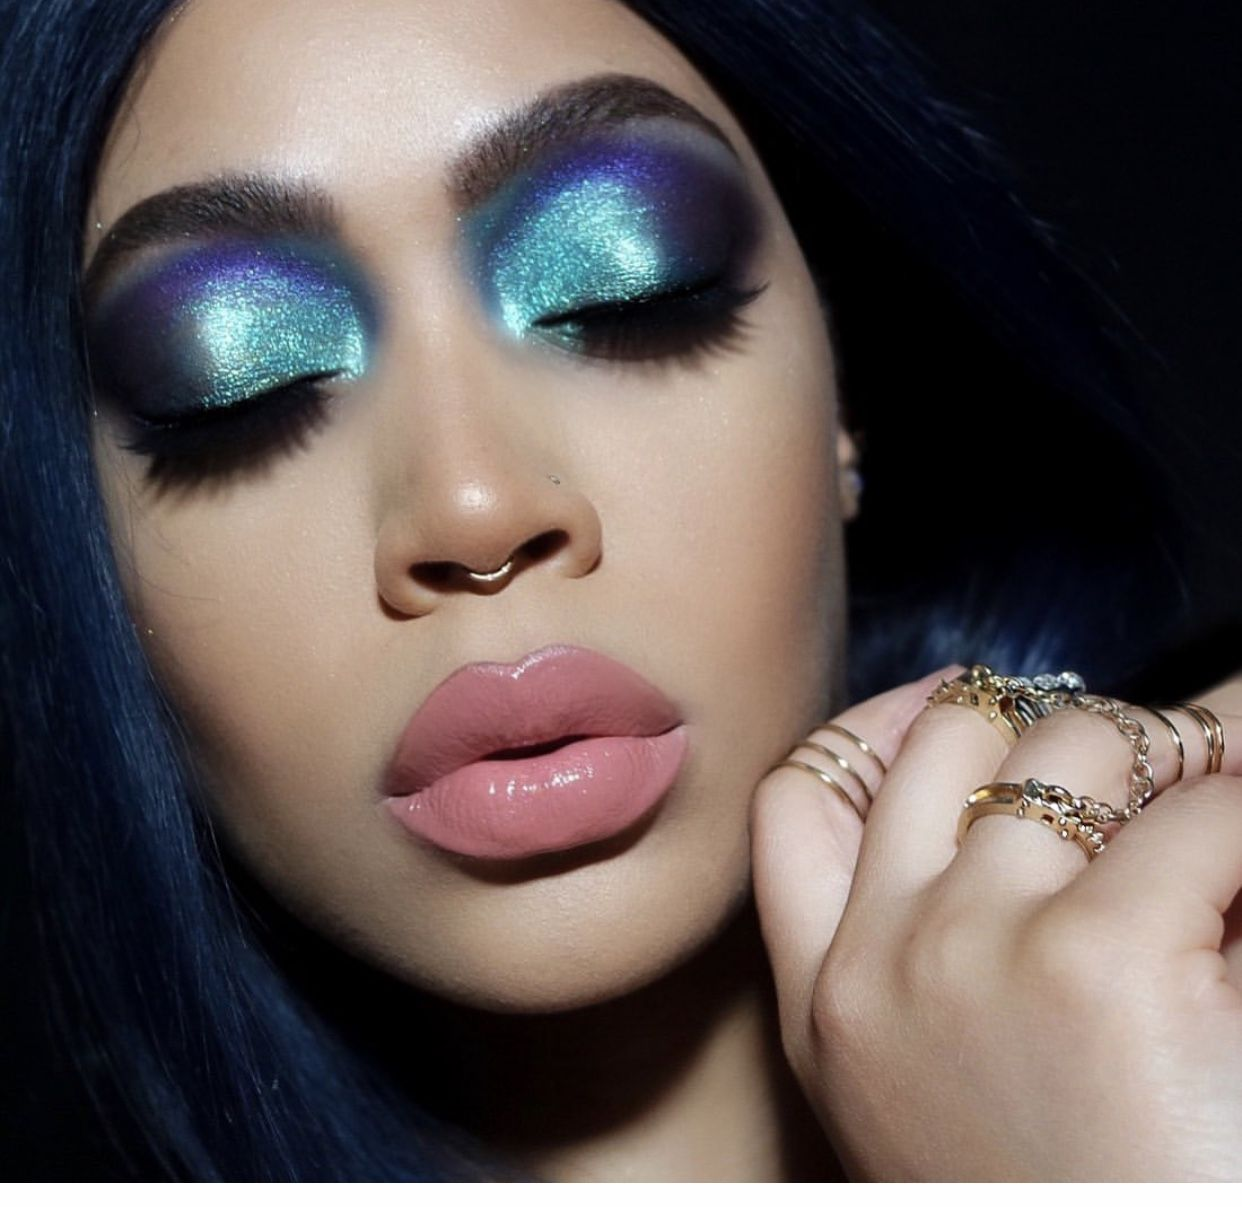 Pin by Melissa Bryant on Makeup Looks in 2020 Eye makeup